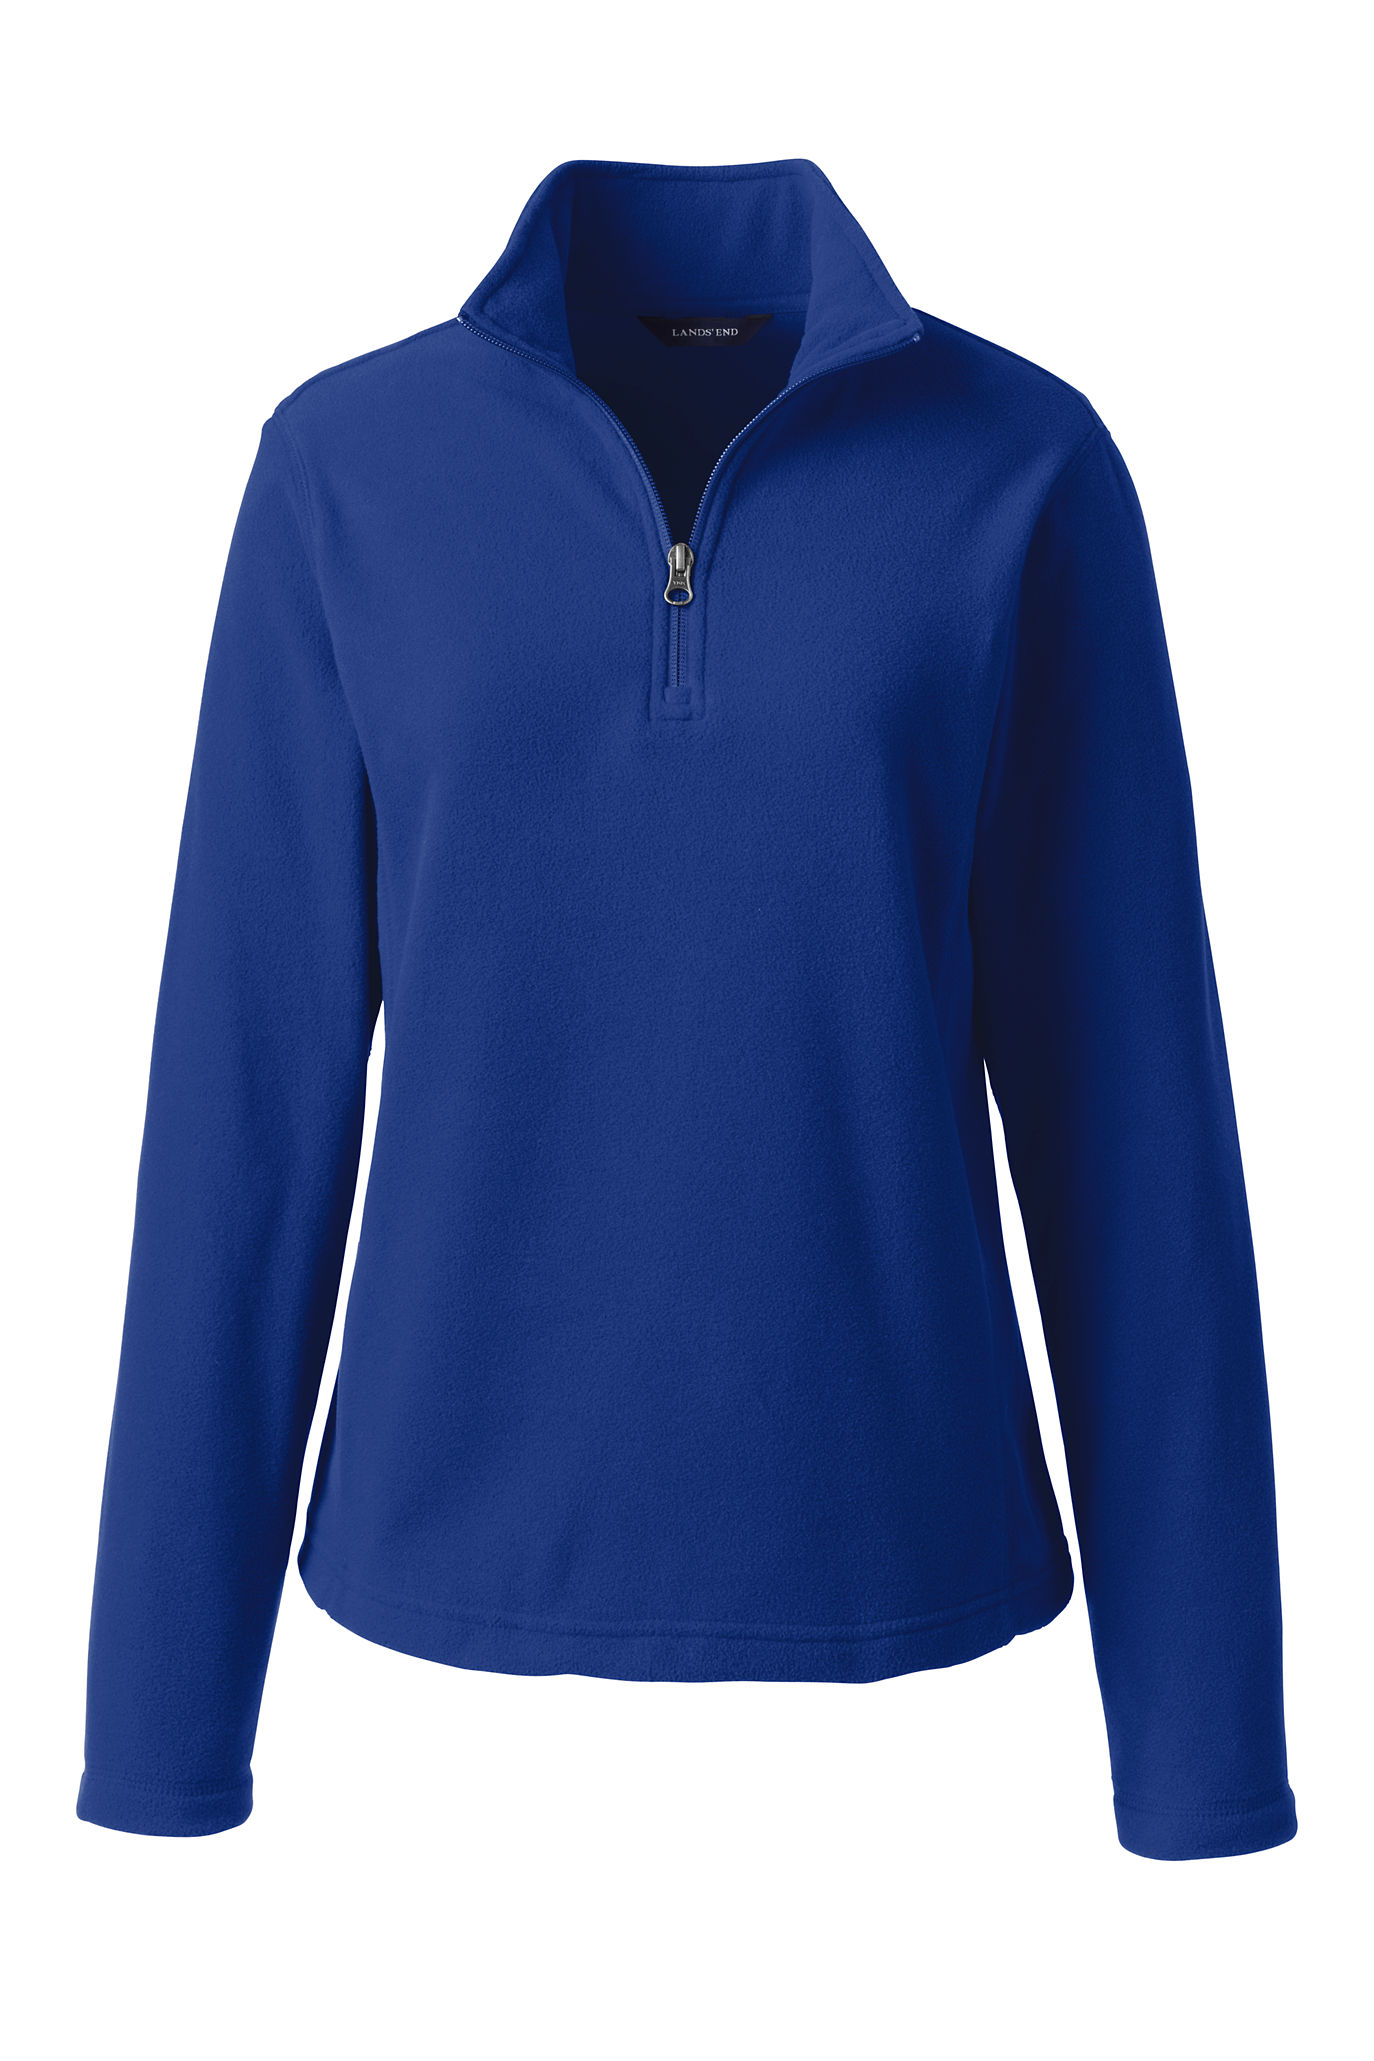 Lands End Fall Sale: Extra 50% Off Full Price Item